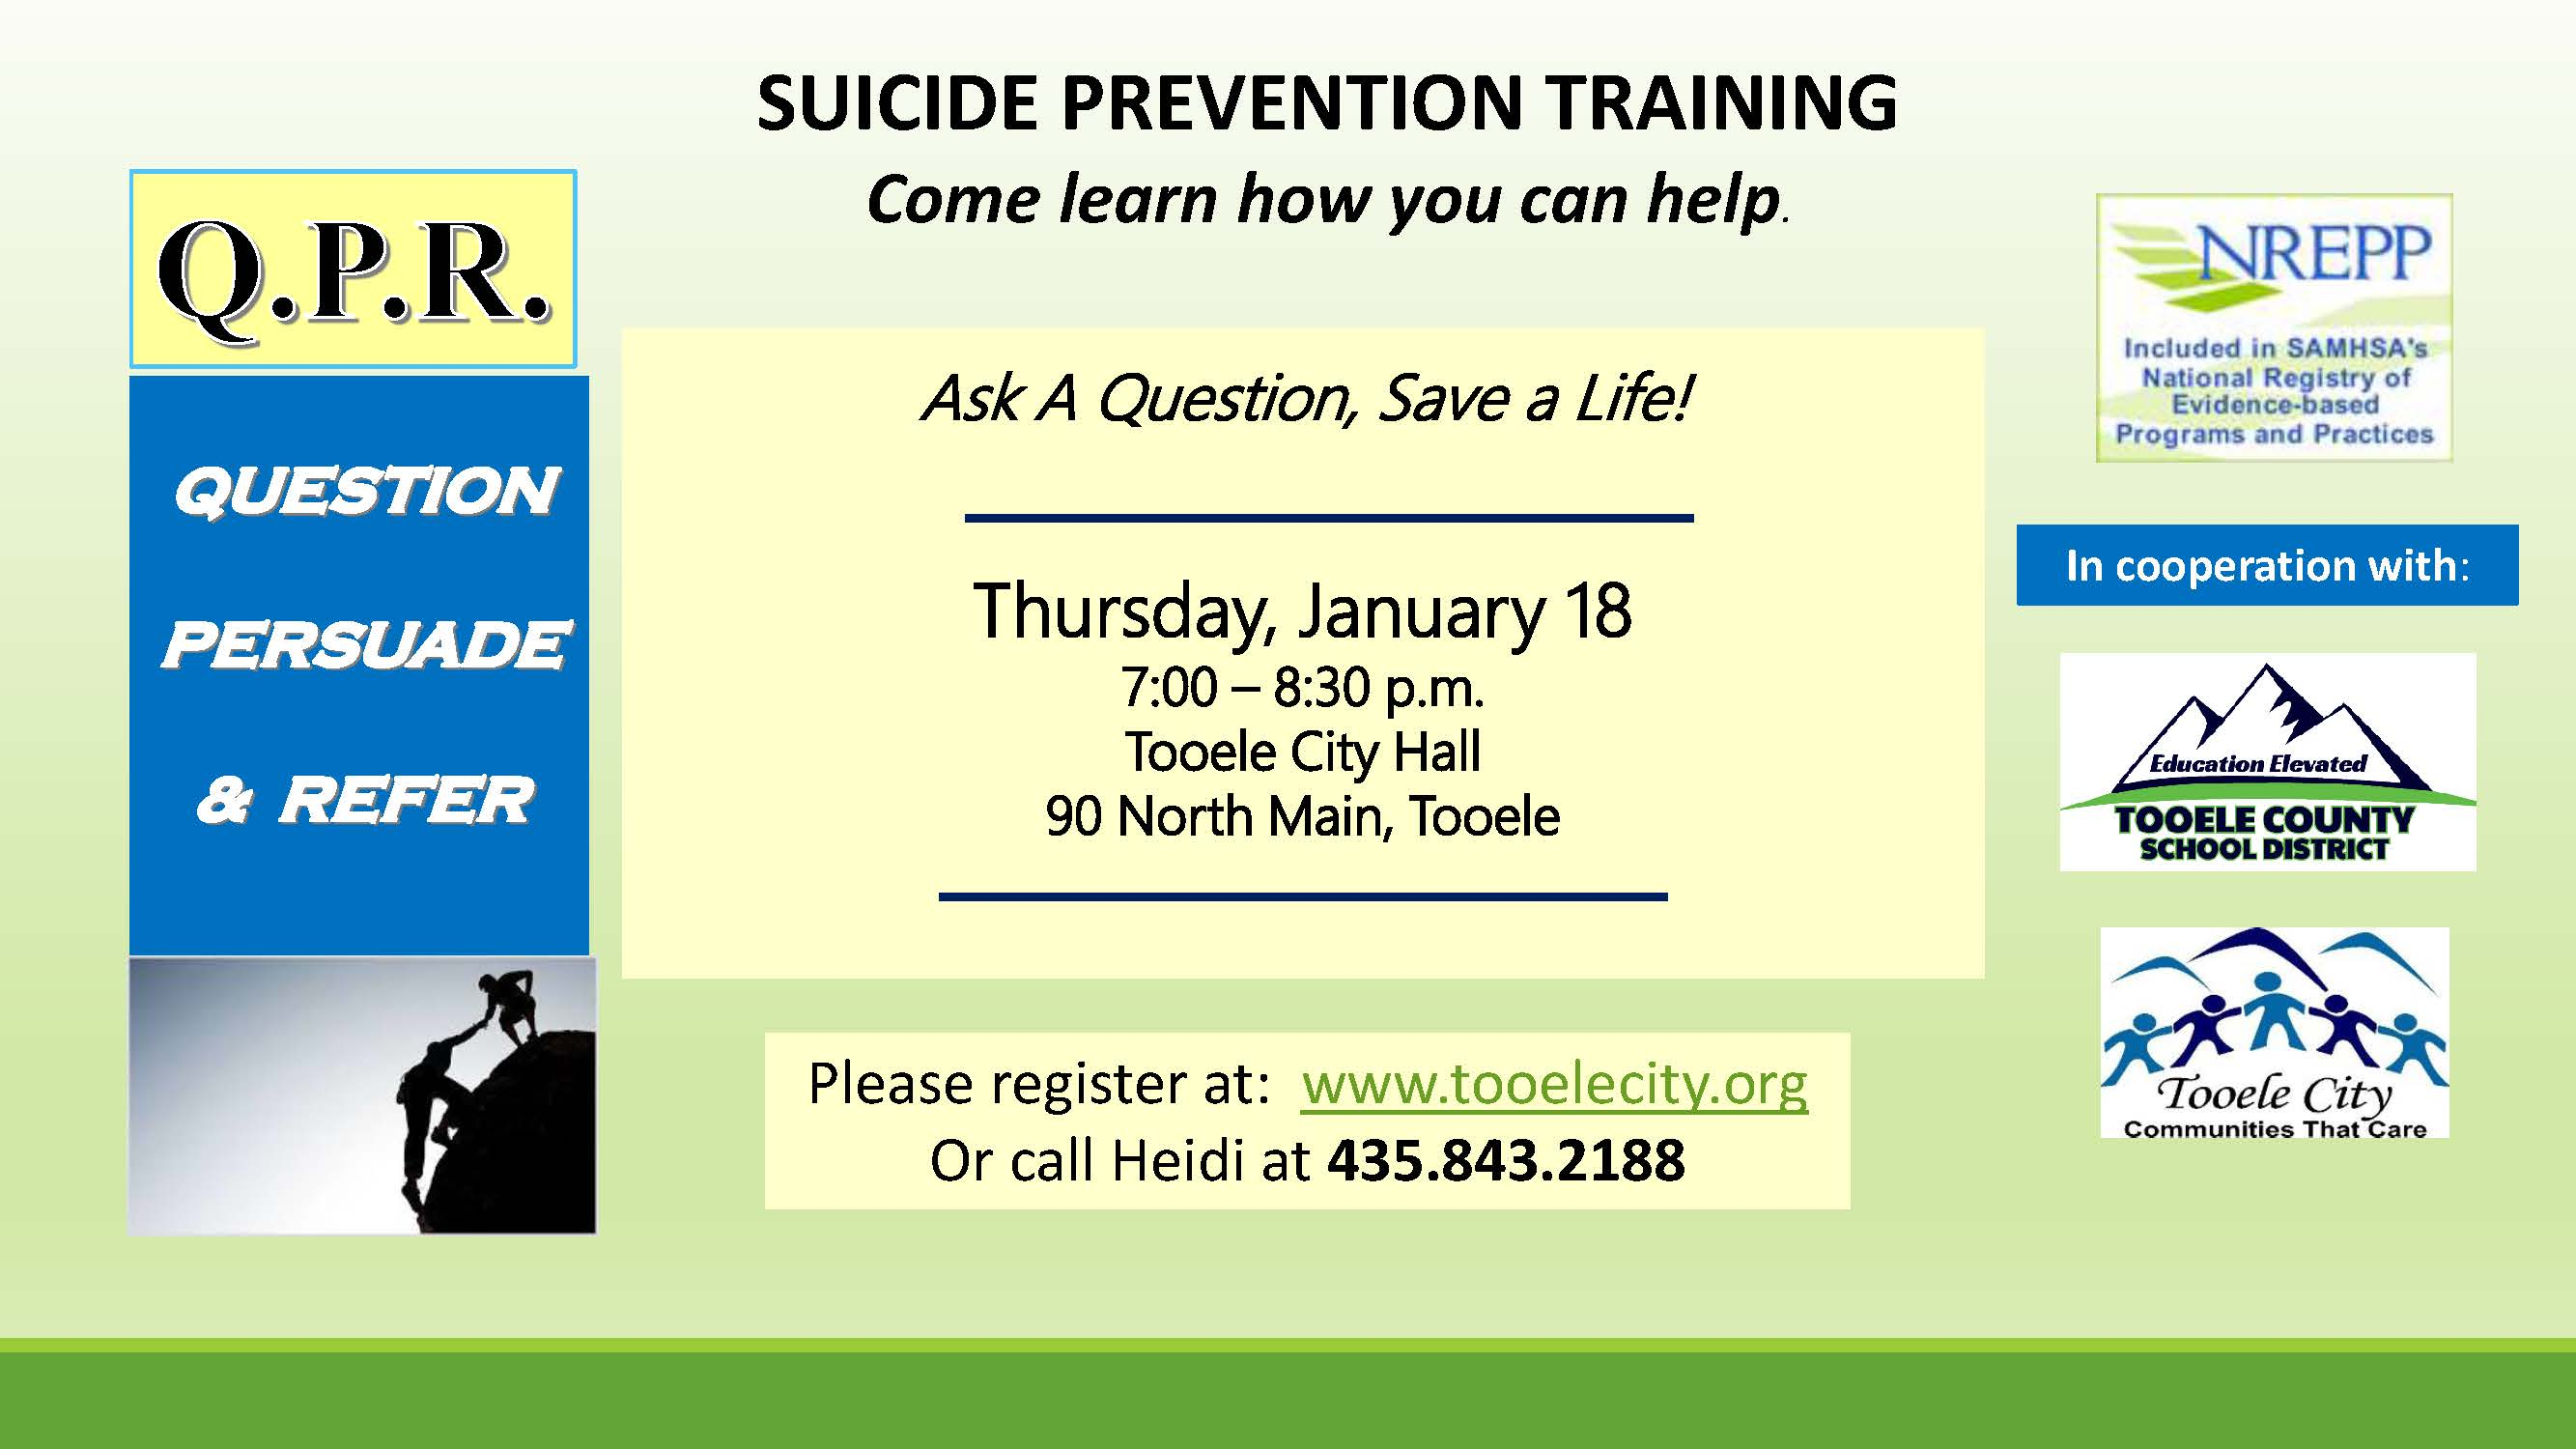 QPR Suicide Prevention Training January 2018